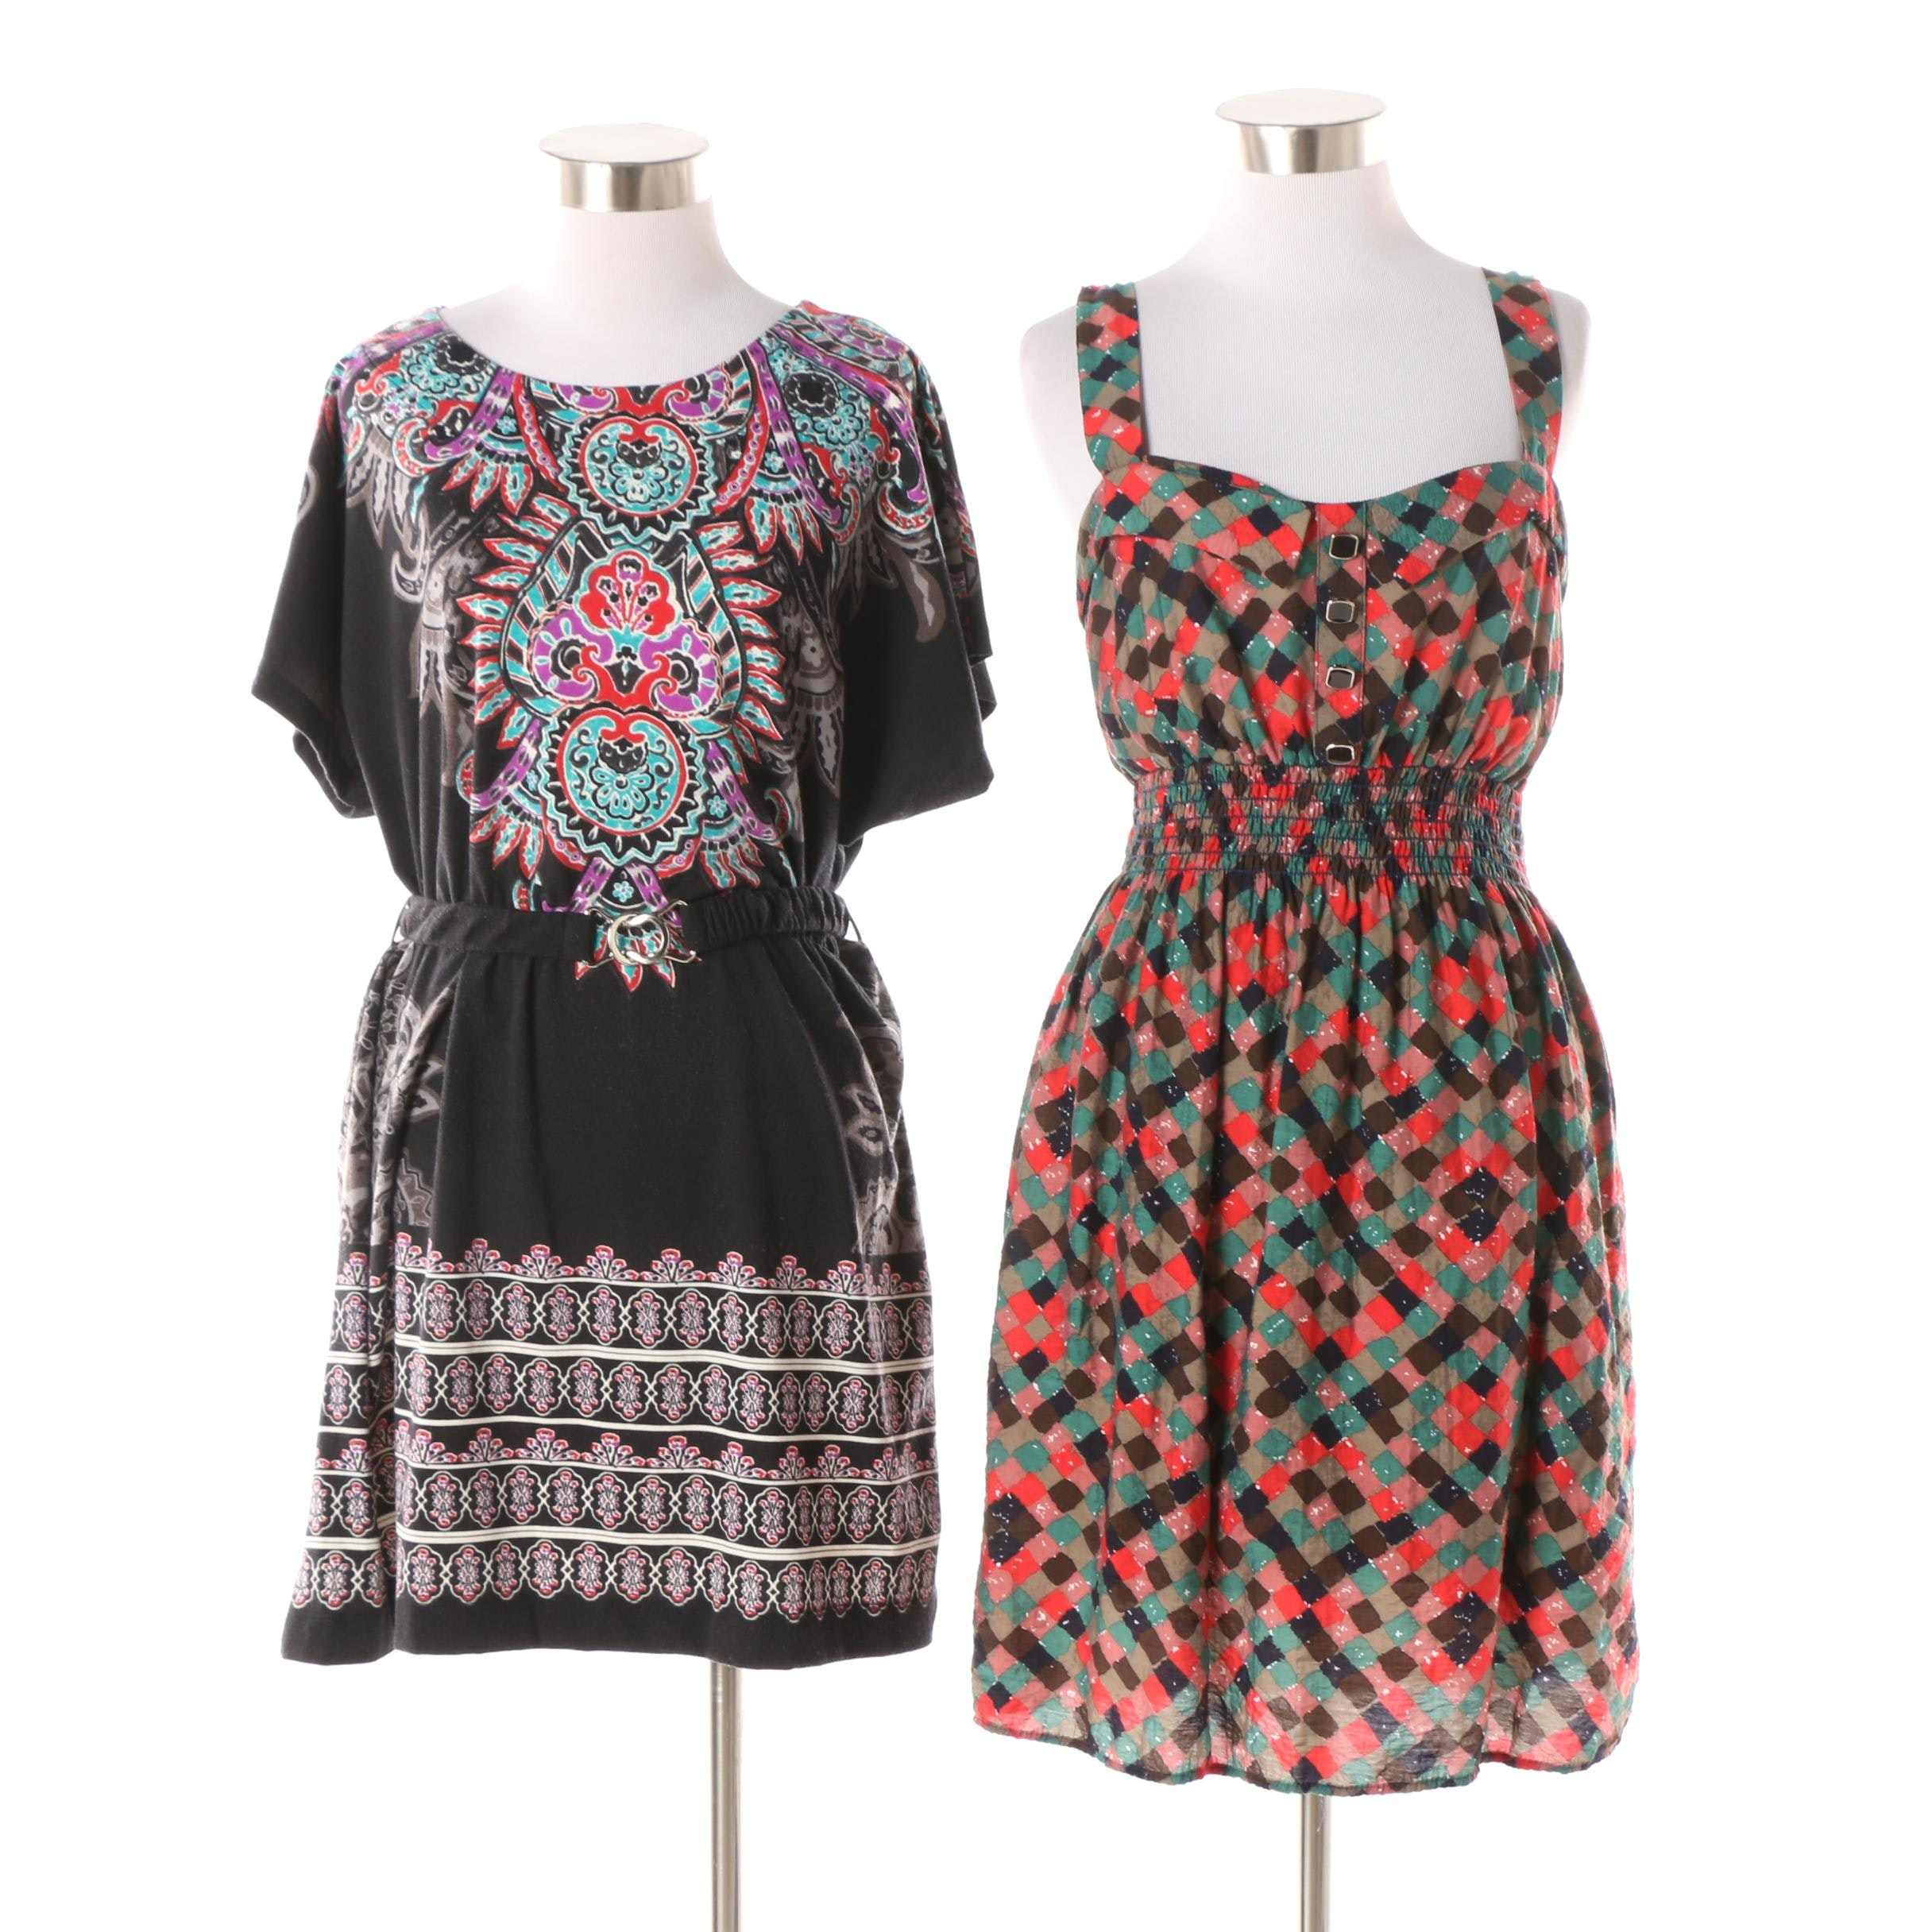 Patterned Dresses Including Forever 21